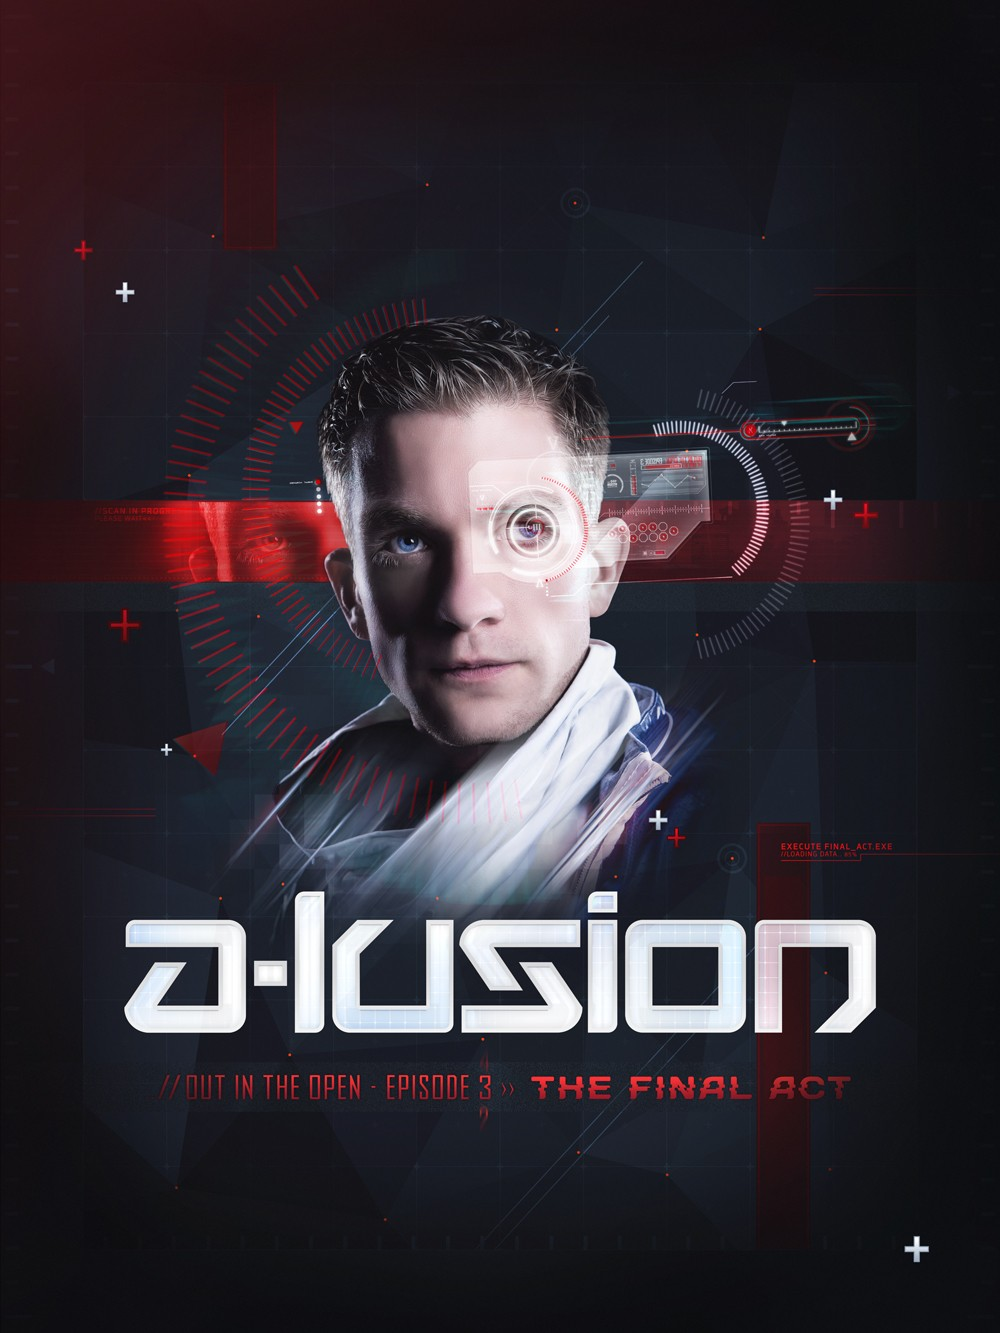 A-Lusion Out in the Open 2 Poster